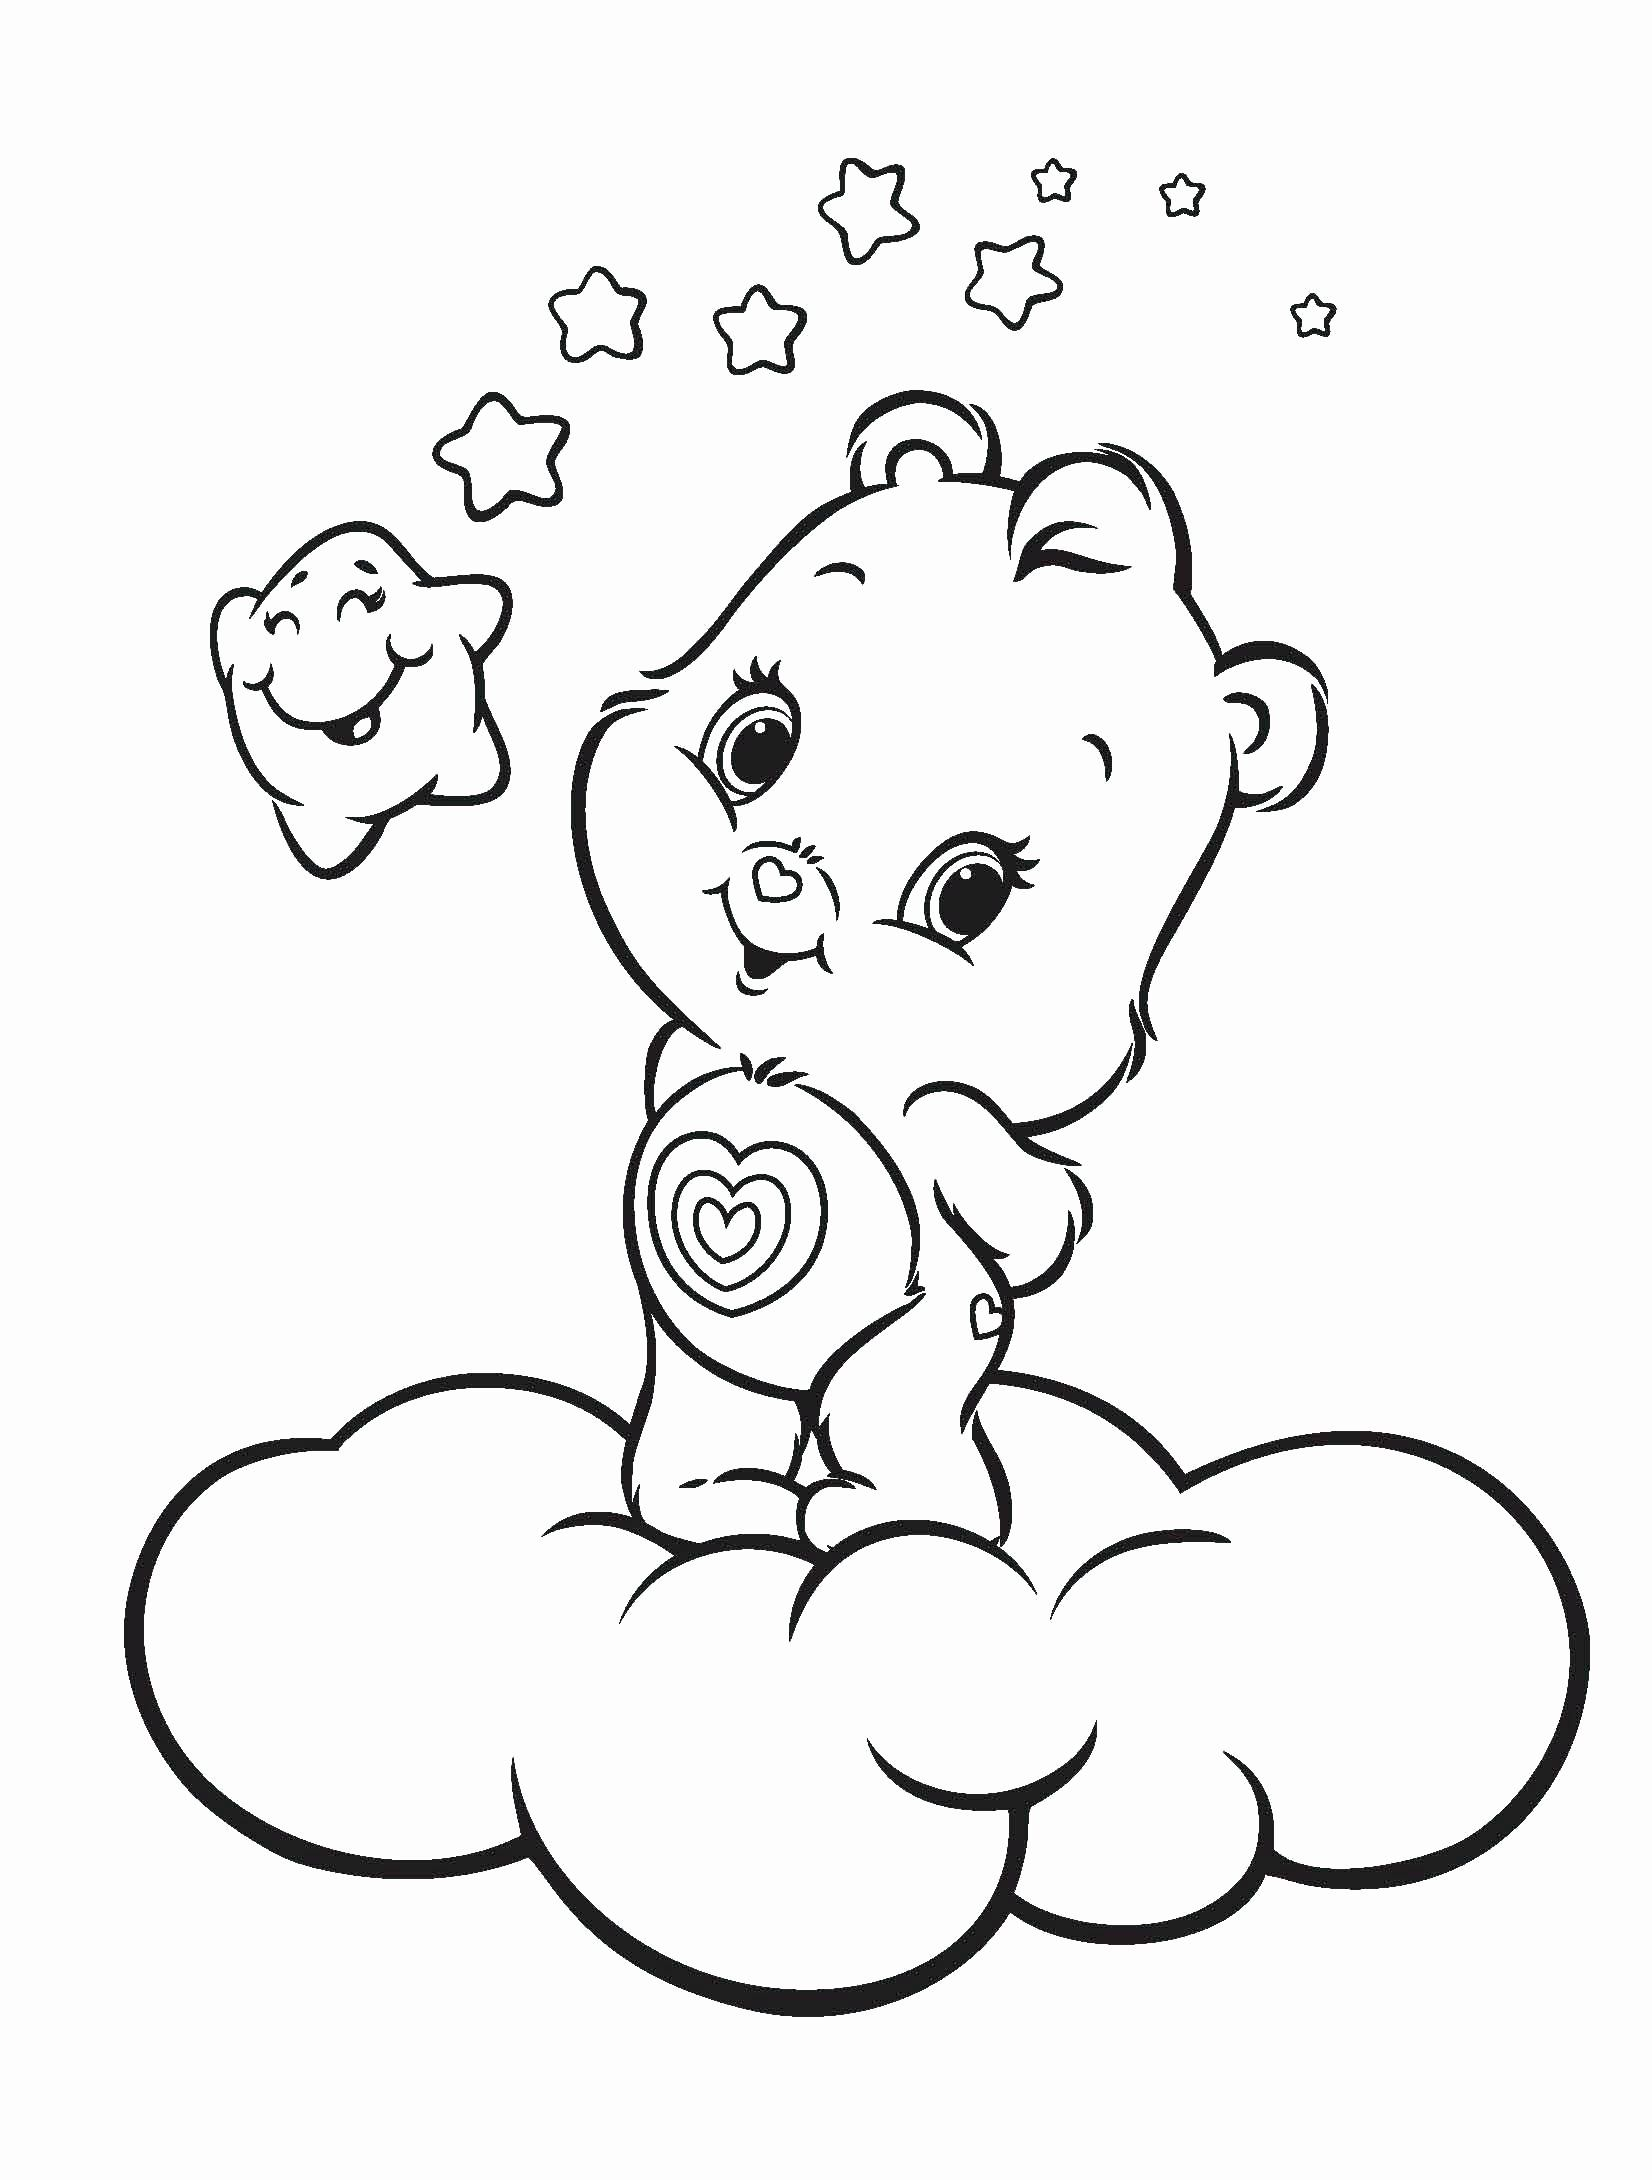 Coloring Pages Teddy Bear Best Of Good Luck Care Bear Coloring